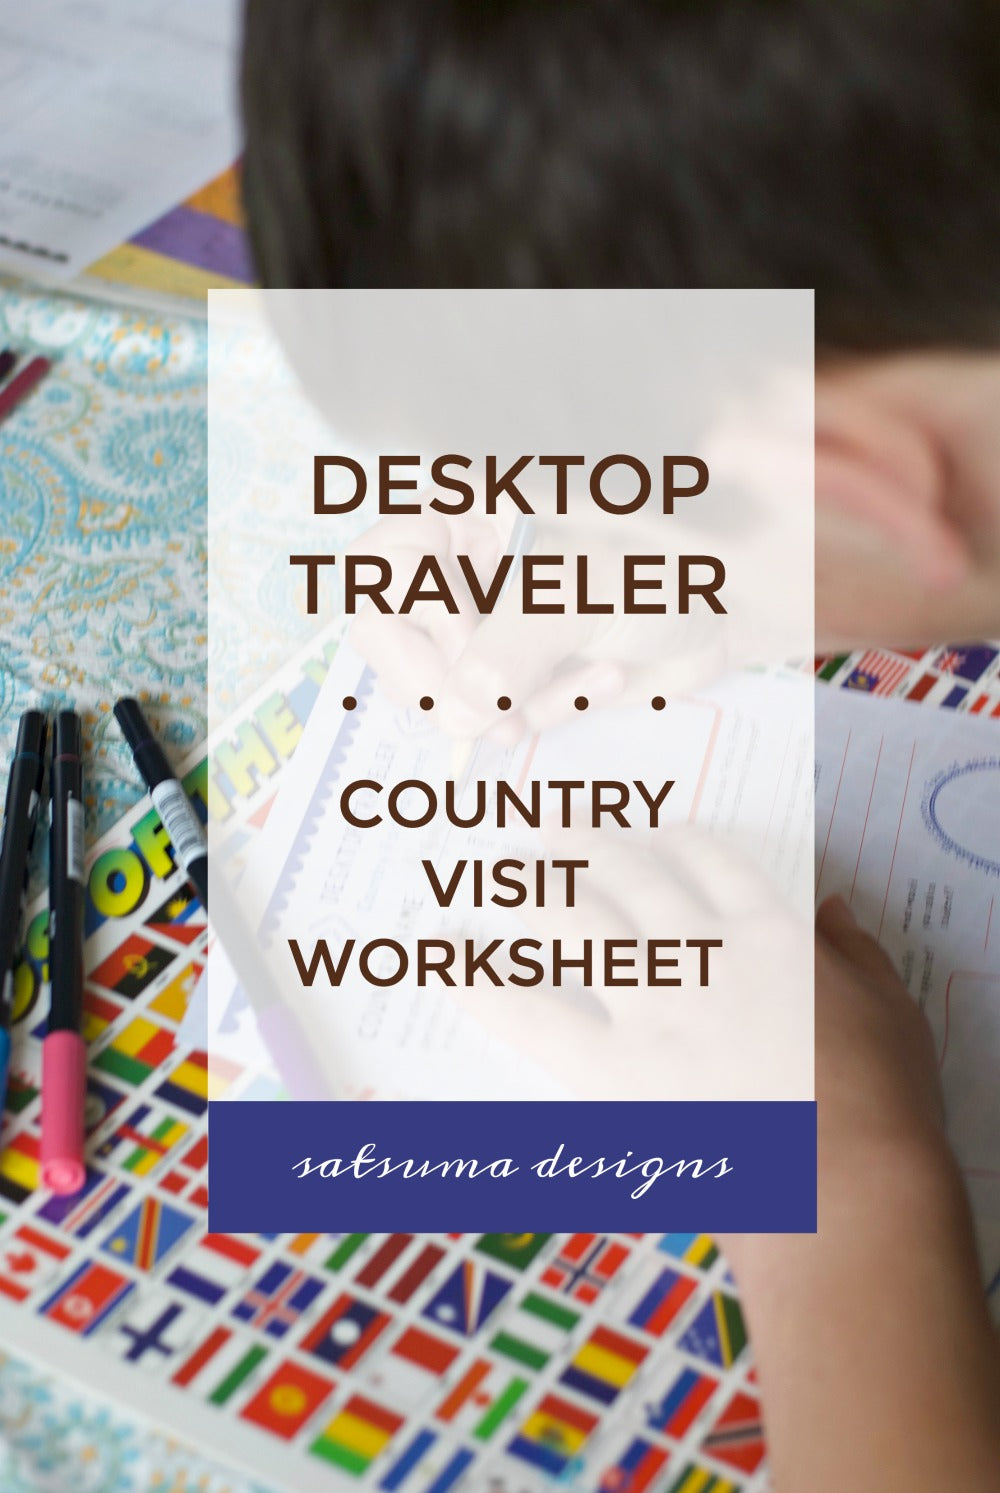 Desktop traveler country visit worksheet | take a trip around the world with my worksheet for older elementary school and middle school students #worksheets #internationaltravel #familytravel #homeschool #classroom #worksheet #printable #satsumadesigns